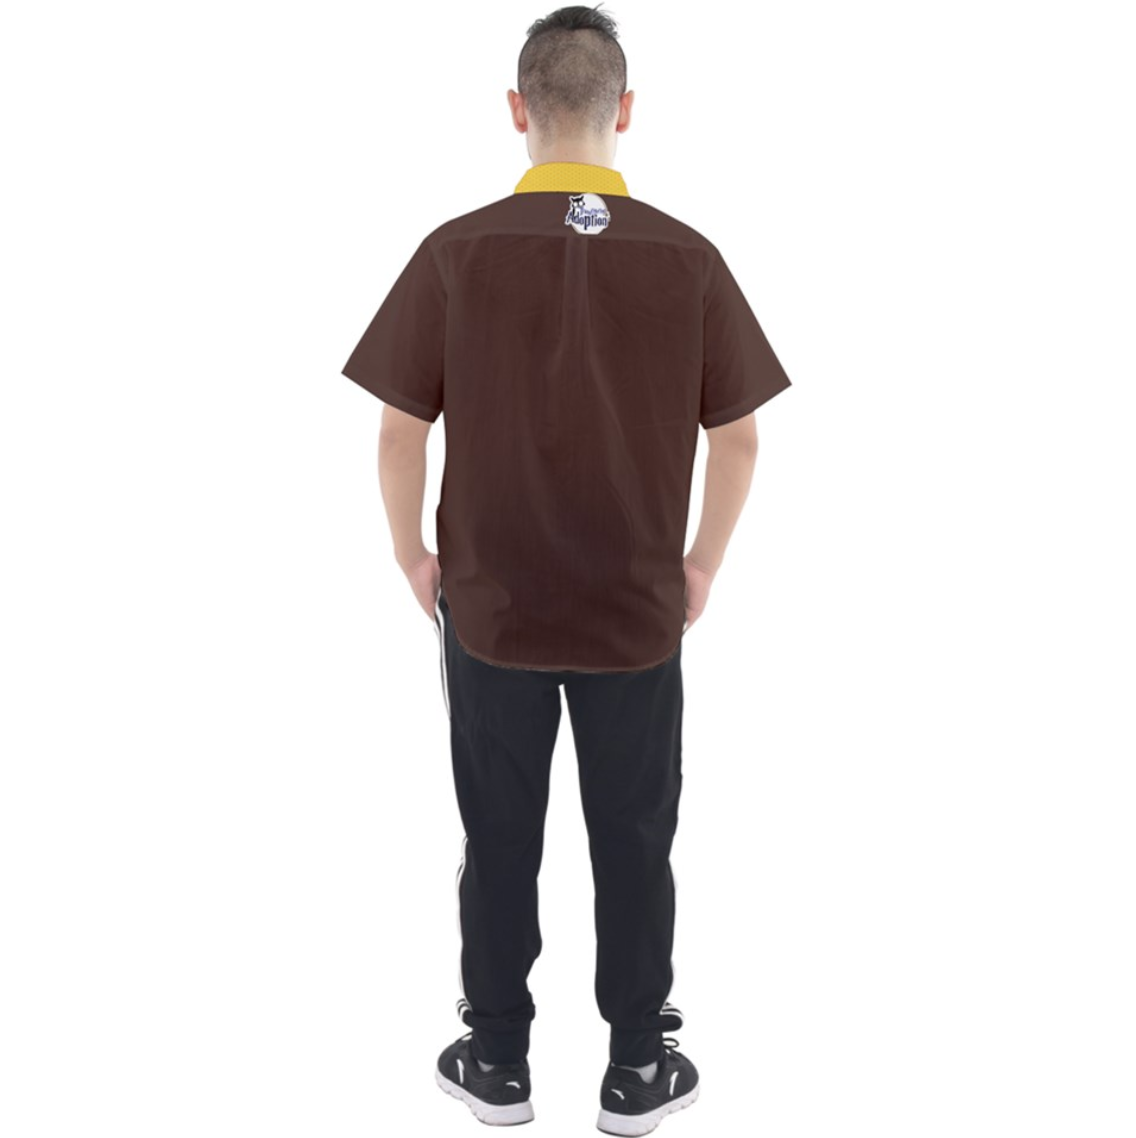 """See The """"TRUE"""" Child Button Up Short Sleeve Shirt (Simple Brown) - Inspired by literary character, Hagrid"""